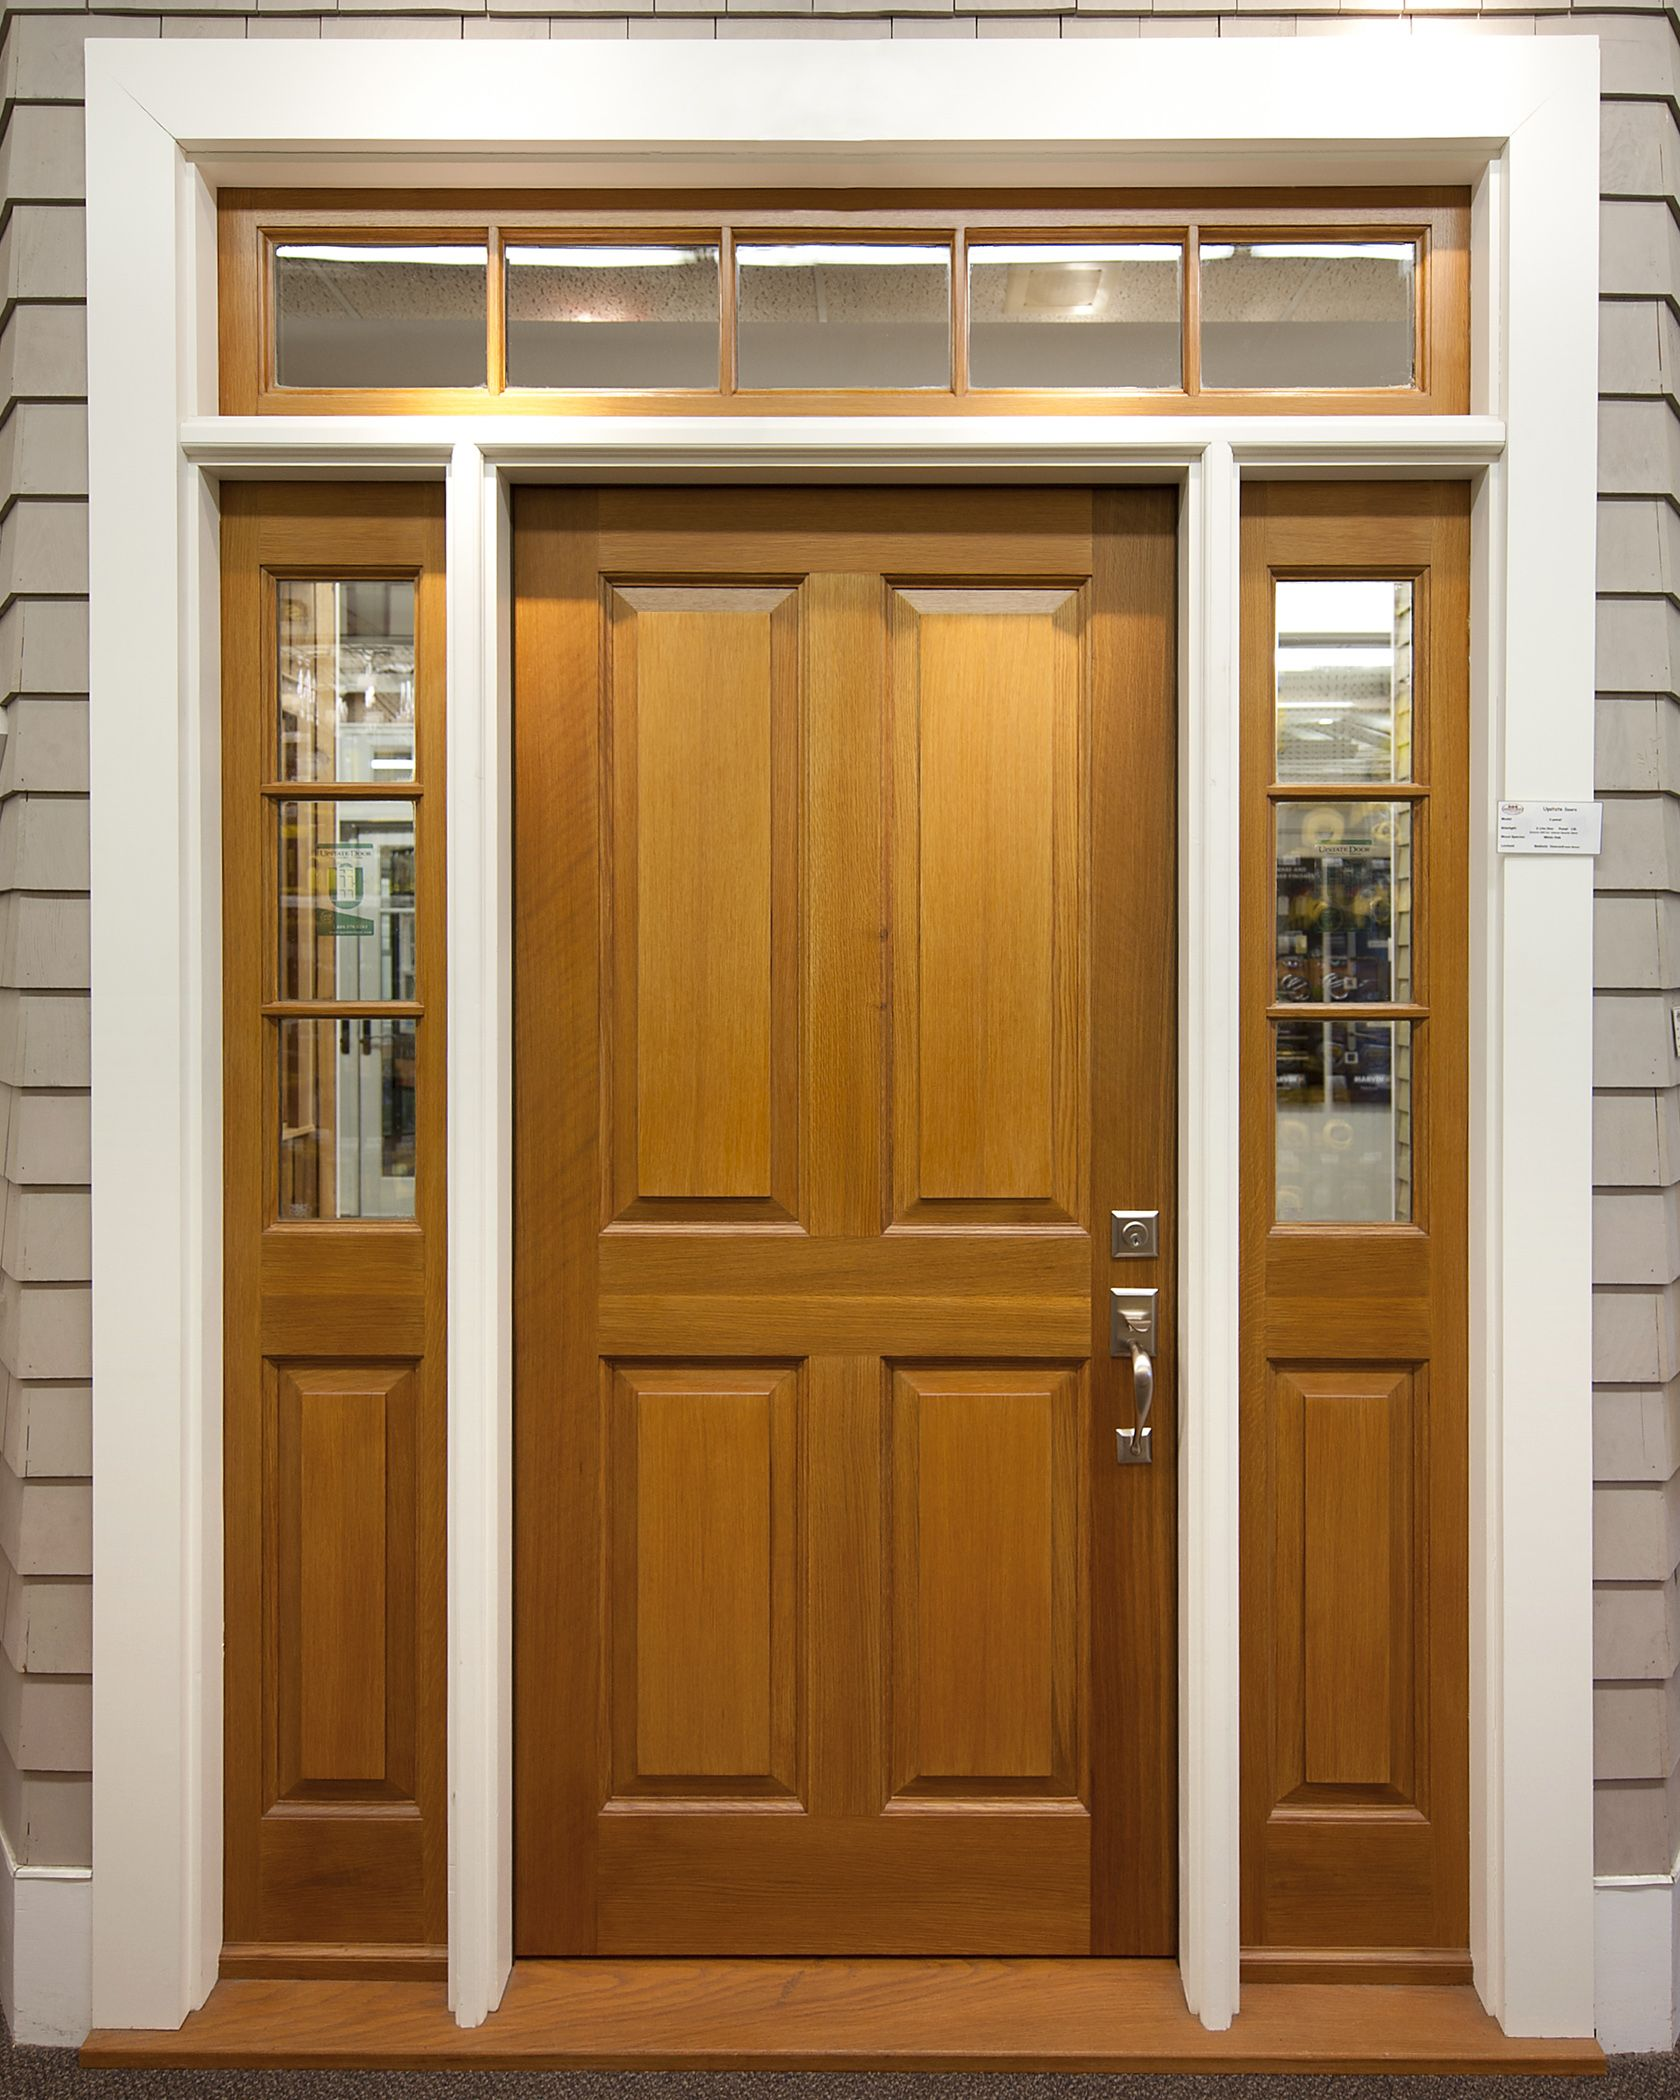 4 Panel Exterior Door With 3 Lite Over 1 Panel Sidelites 5 Lite Transom To Complete The Custom Exterior Doors Interior Exterior Doors Sliding Doors Interior